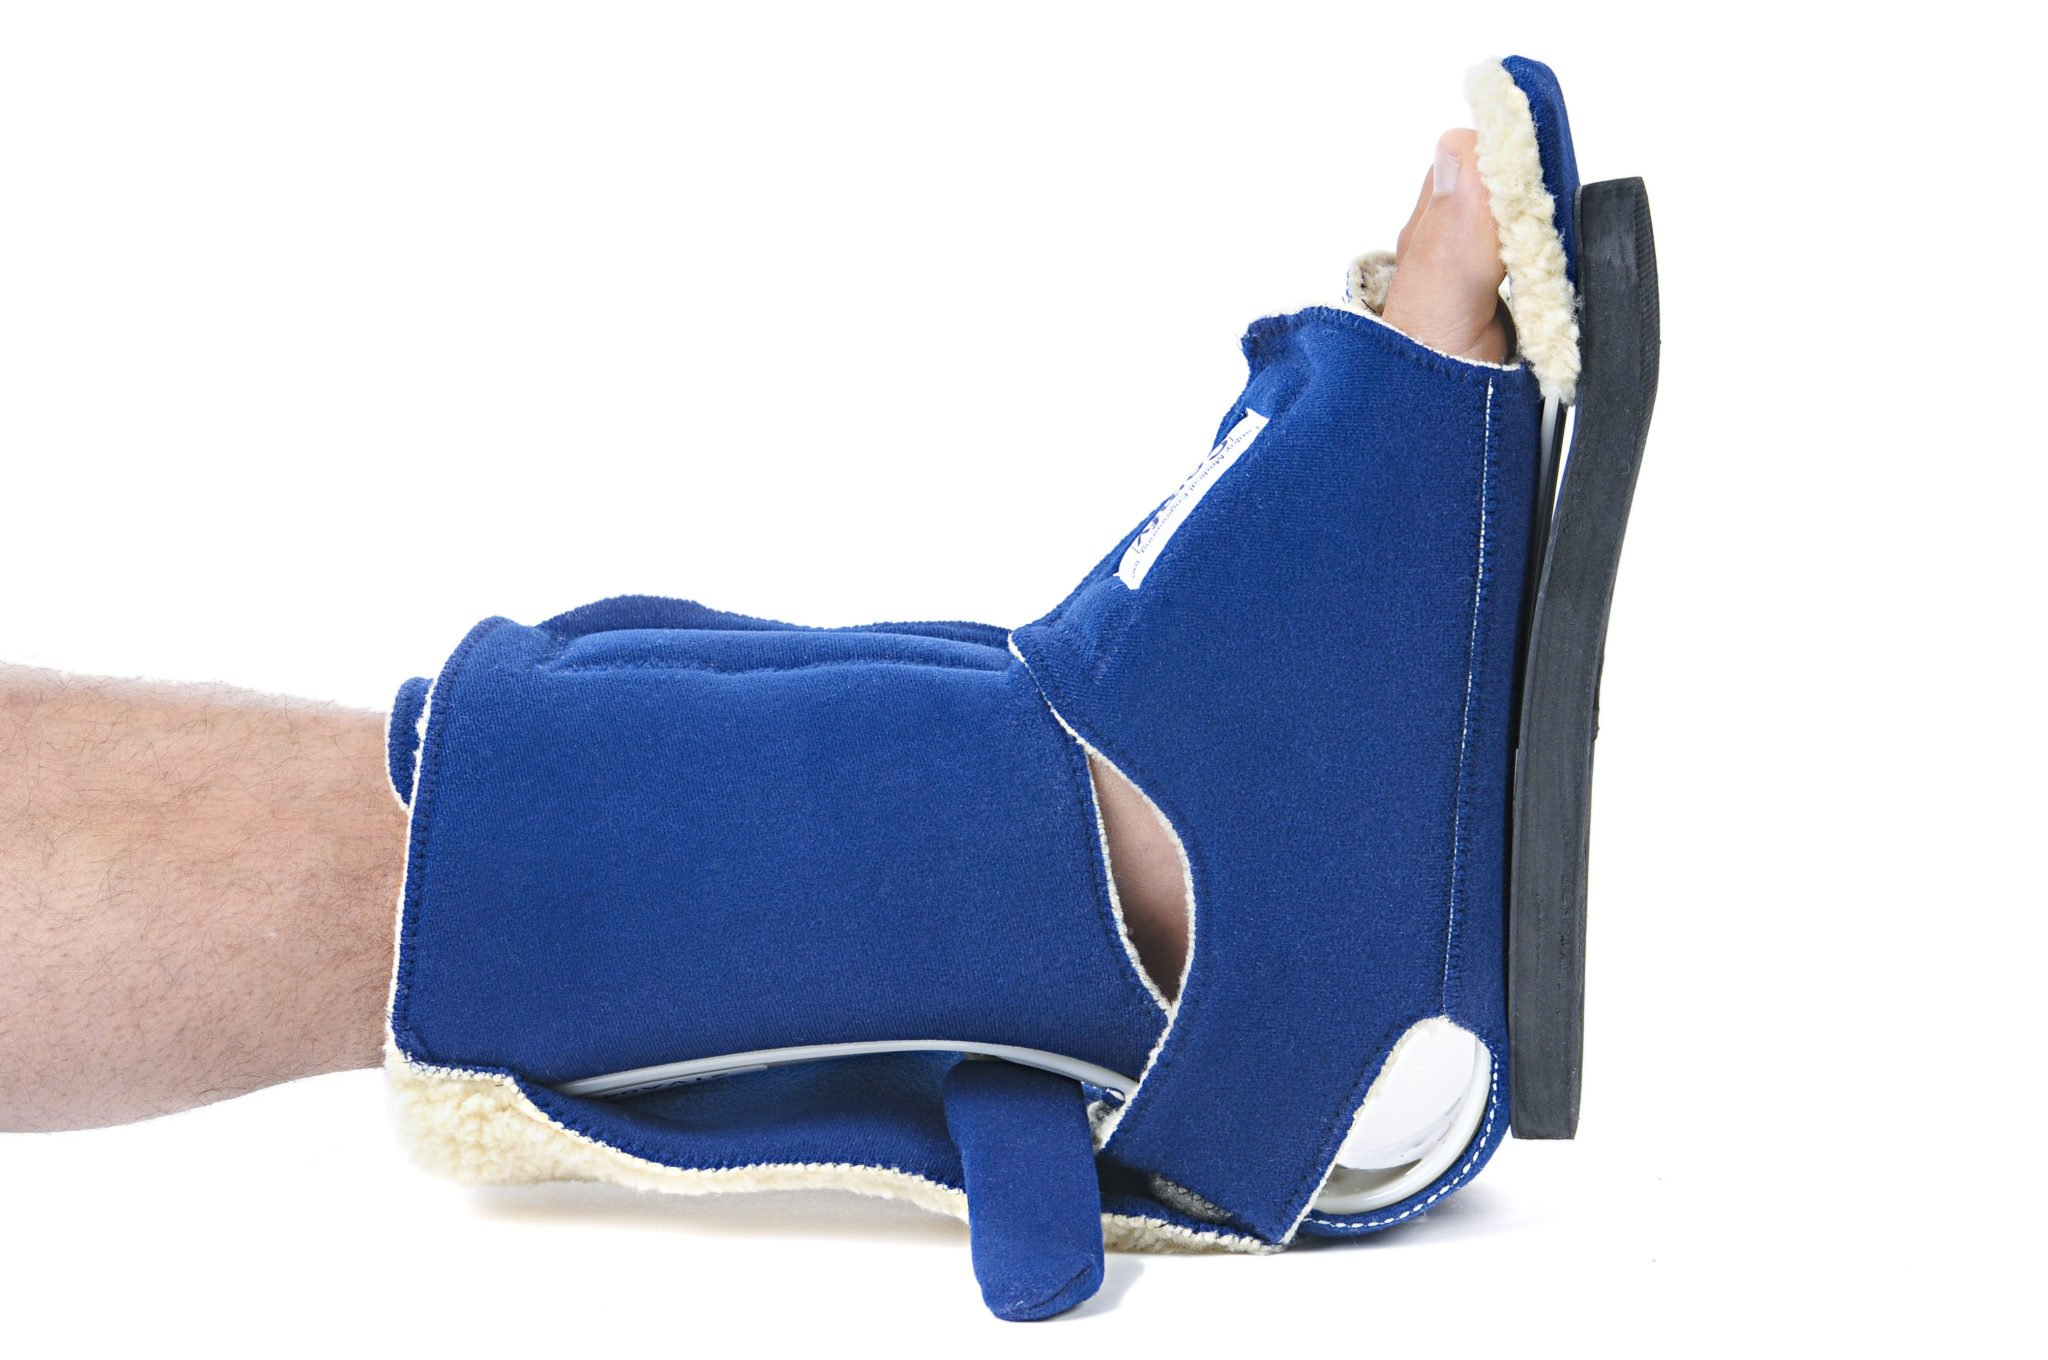 Comfy Ambulating Boot Splint, fits up to a 16 in men's shoe size by Comfy